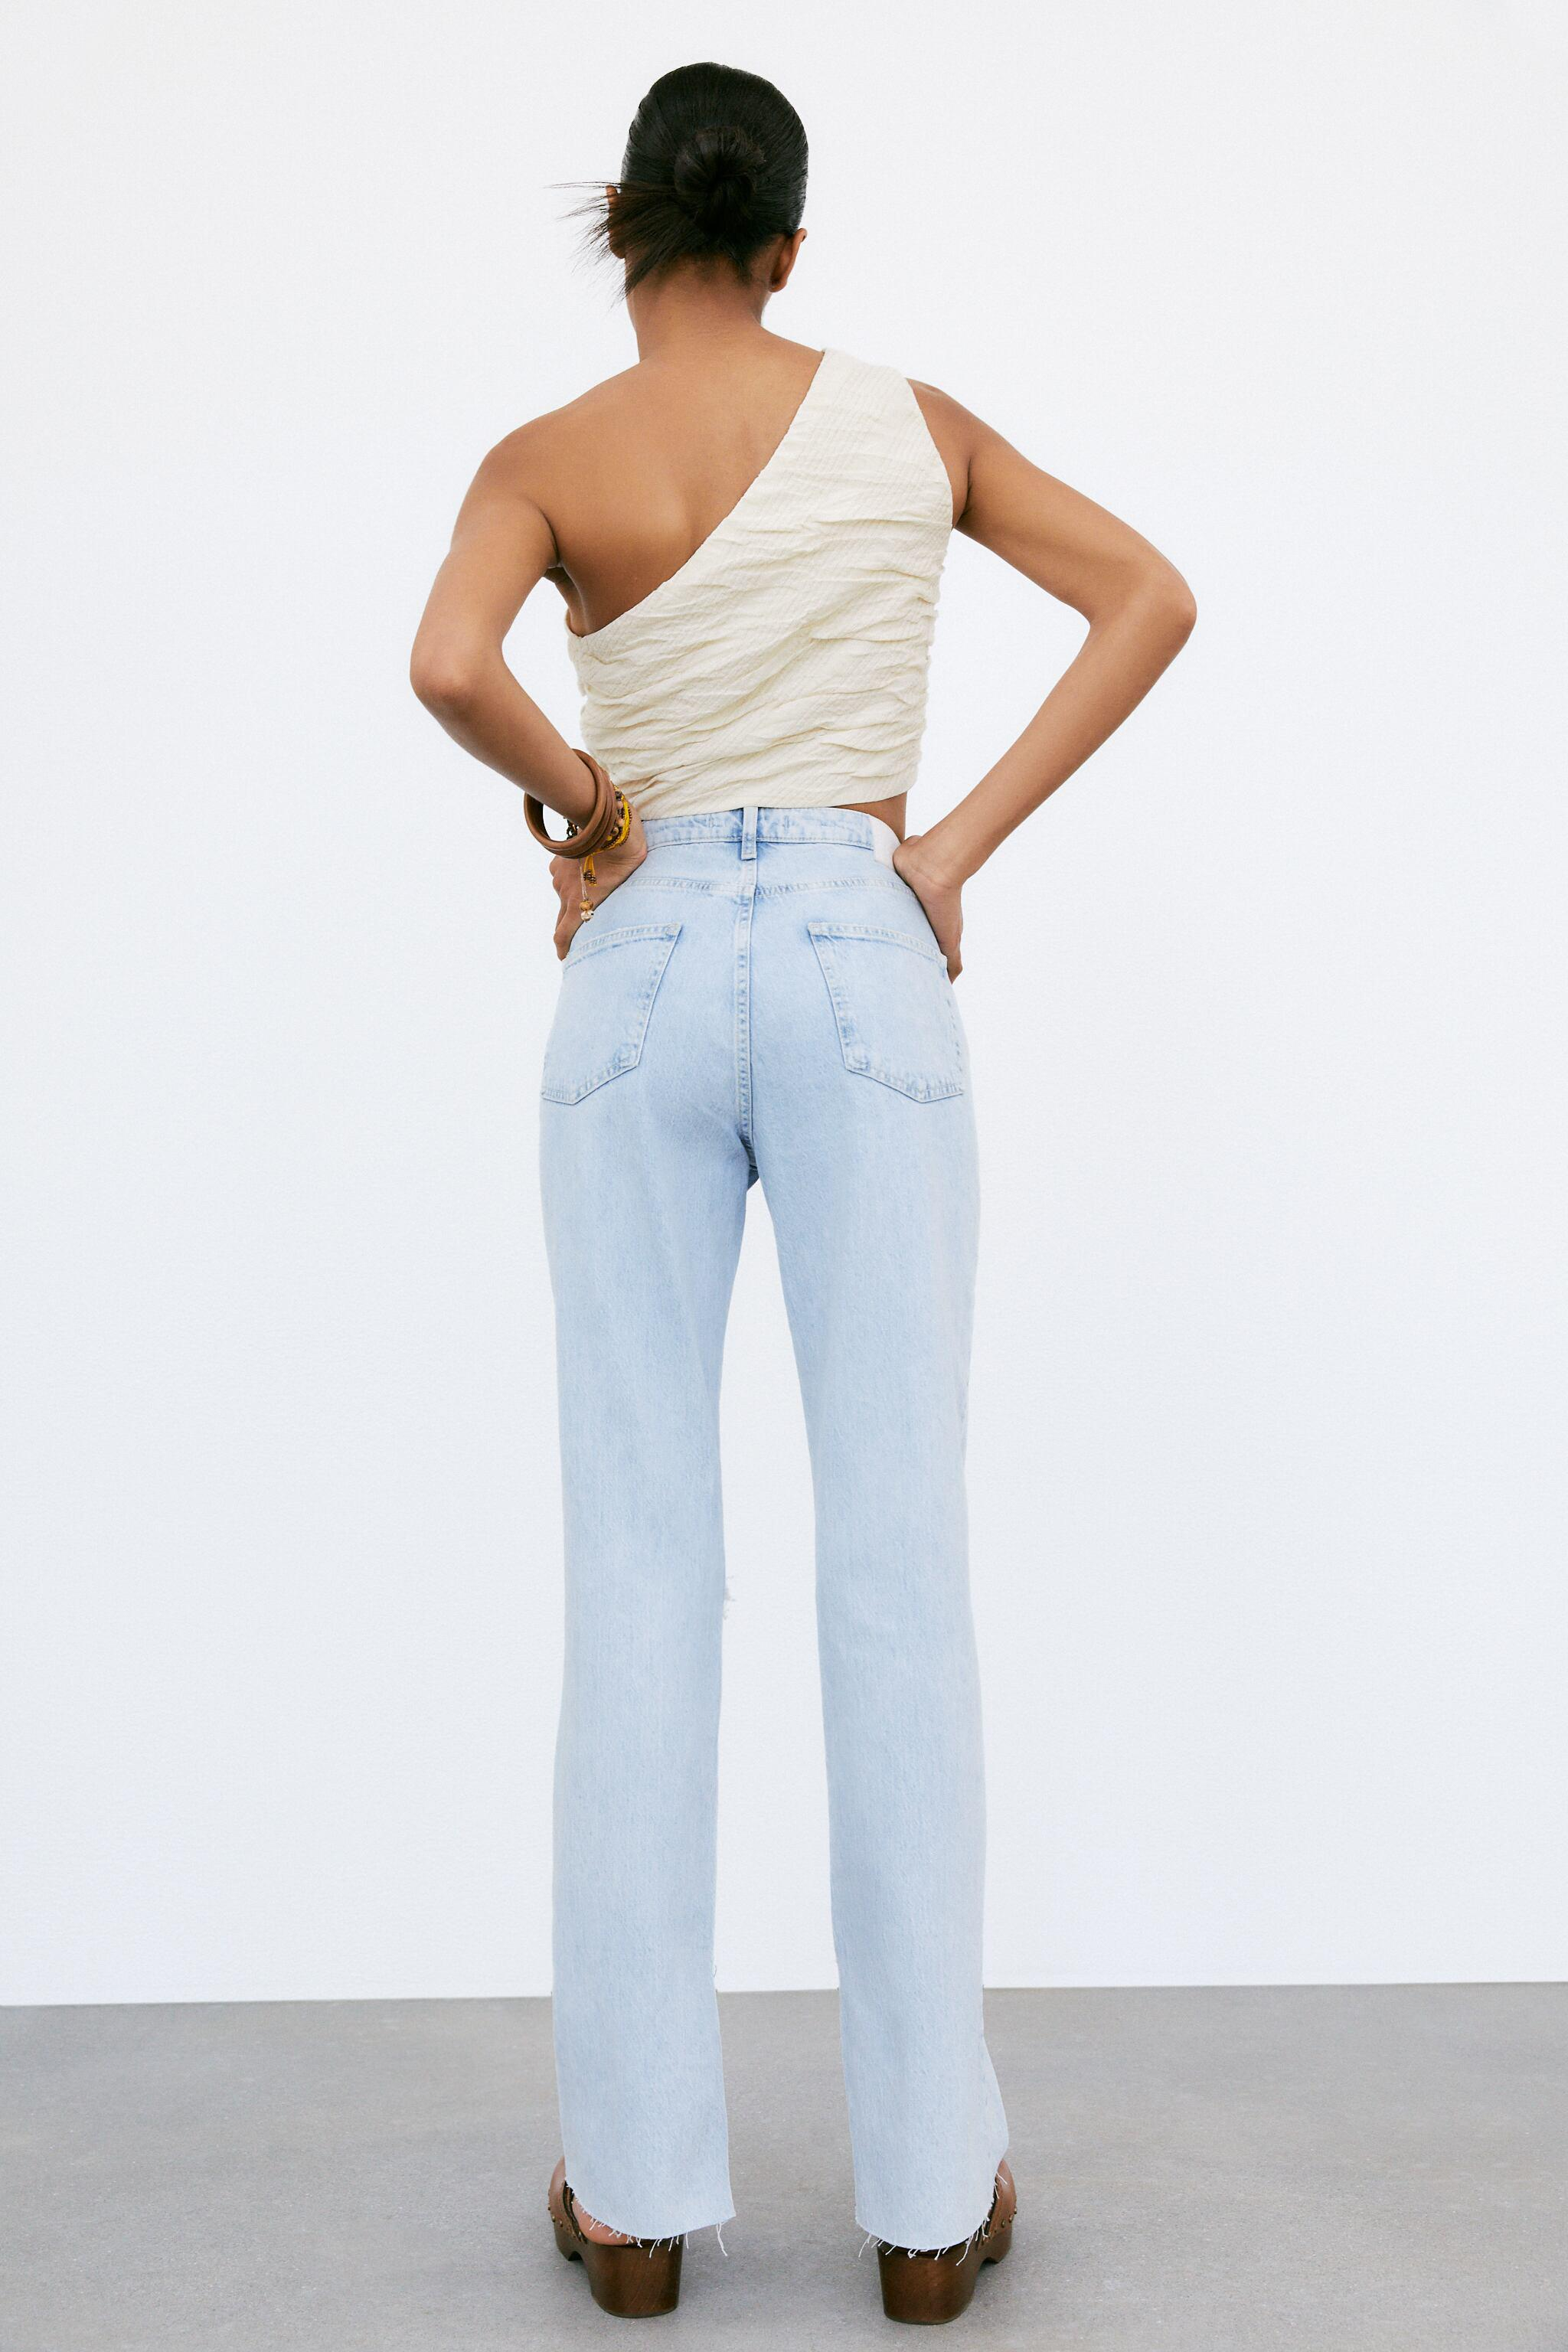 Z1975 FLARED RIPPED SLIM FIT JEANS 4